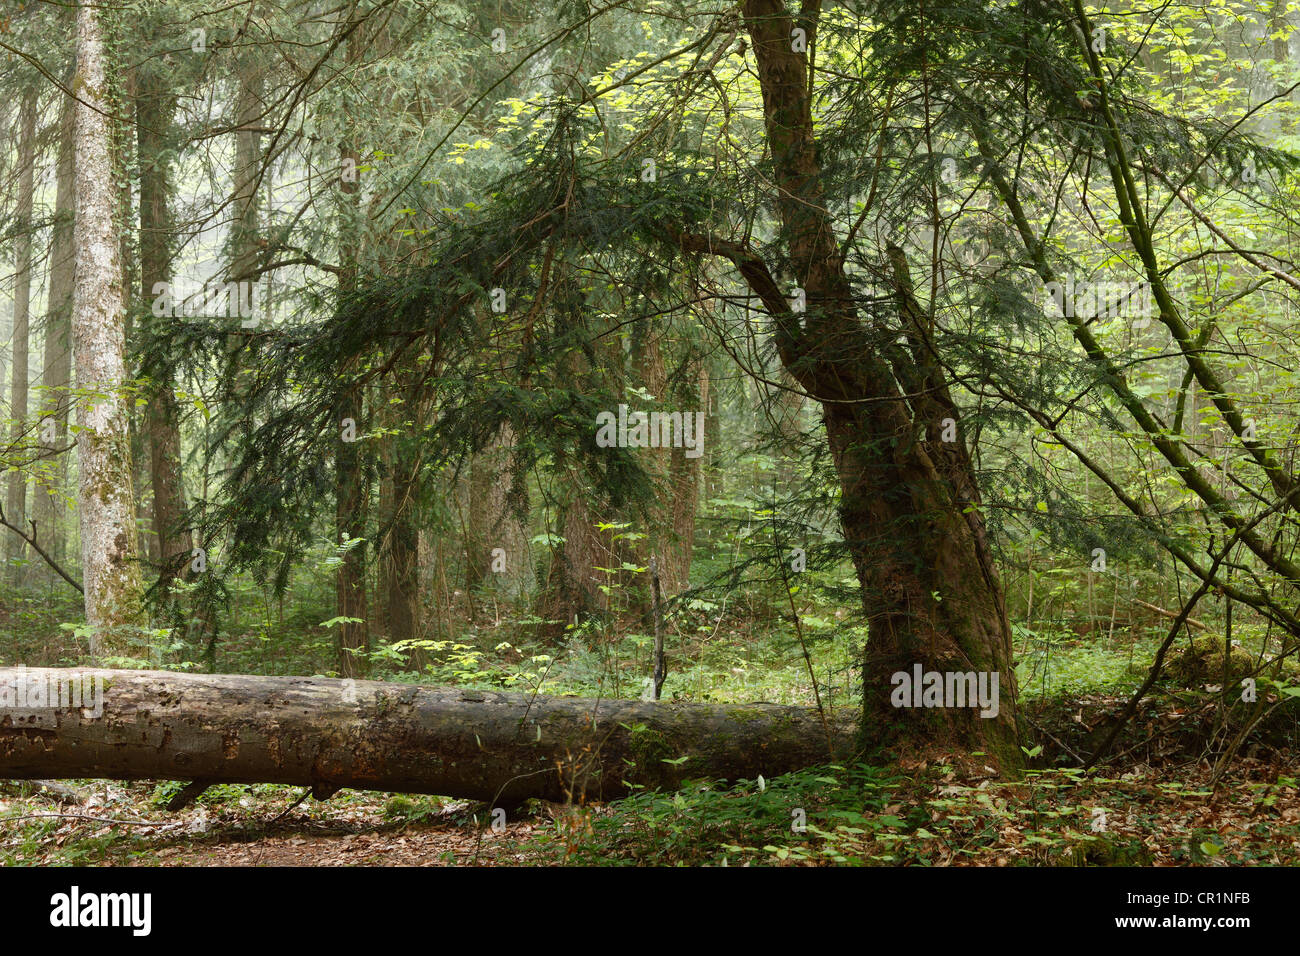 European Yew (Taxus baccata), Paterzell Yew Forest, Paterzell, Upper Bavaria, Bavaria, Germany, Europe - Stock Image